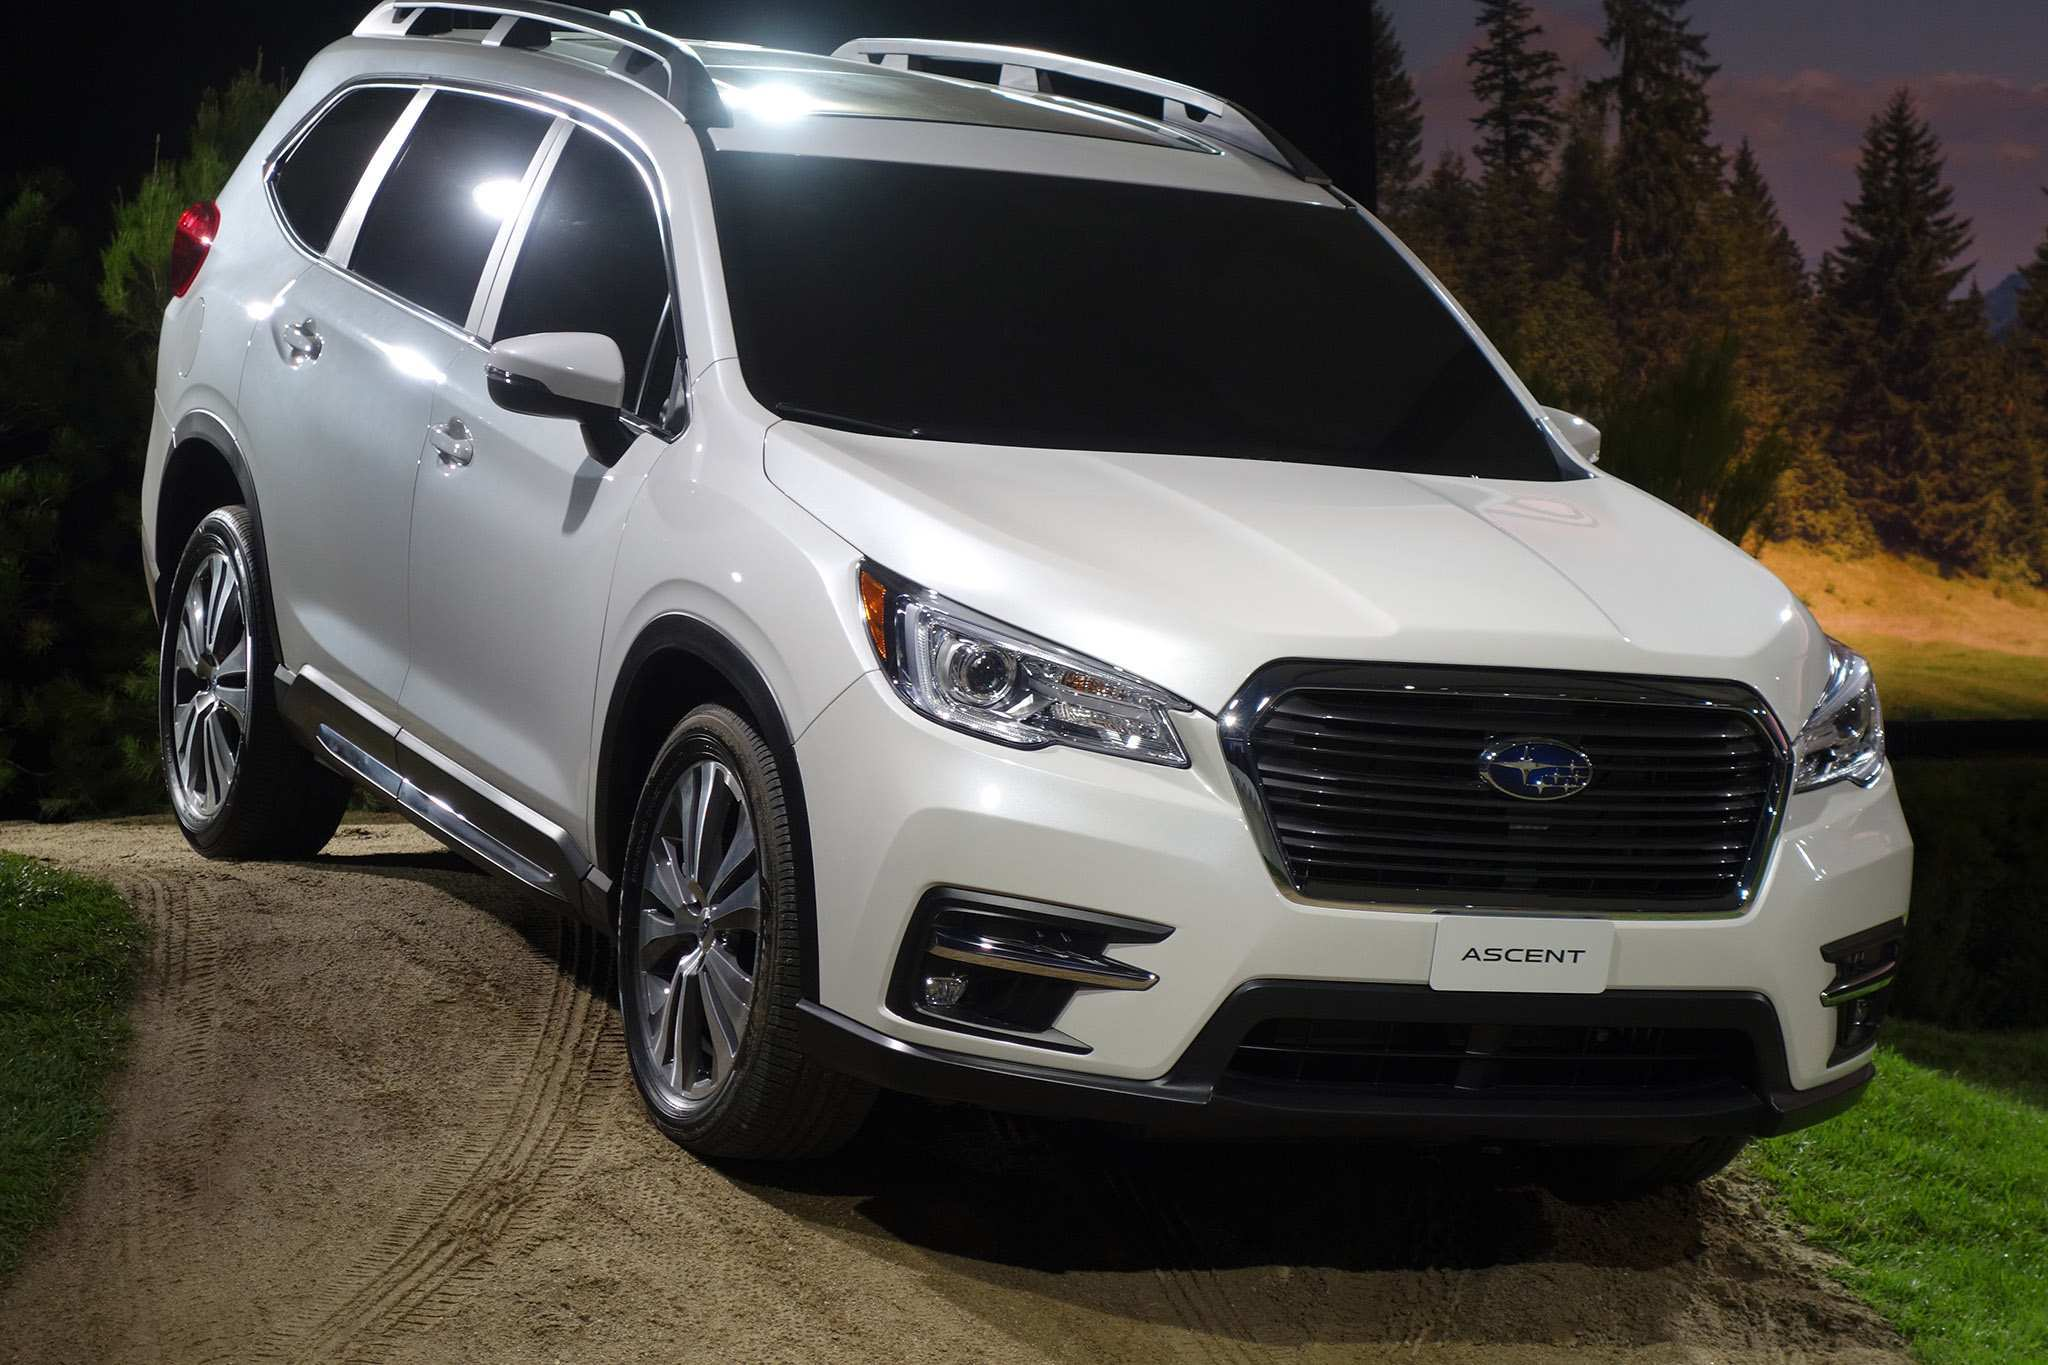 59 The 2019 Subaru Ascent Price Speed Test with 2019 Subaru Ascent Price